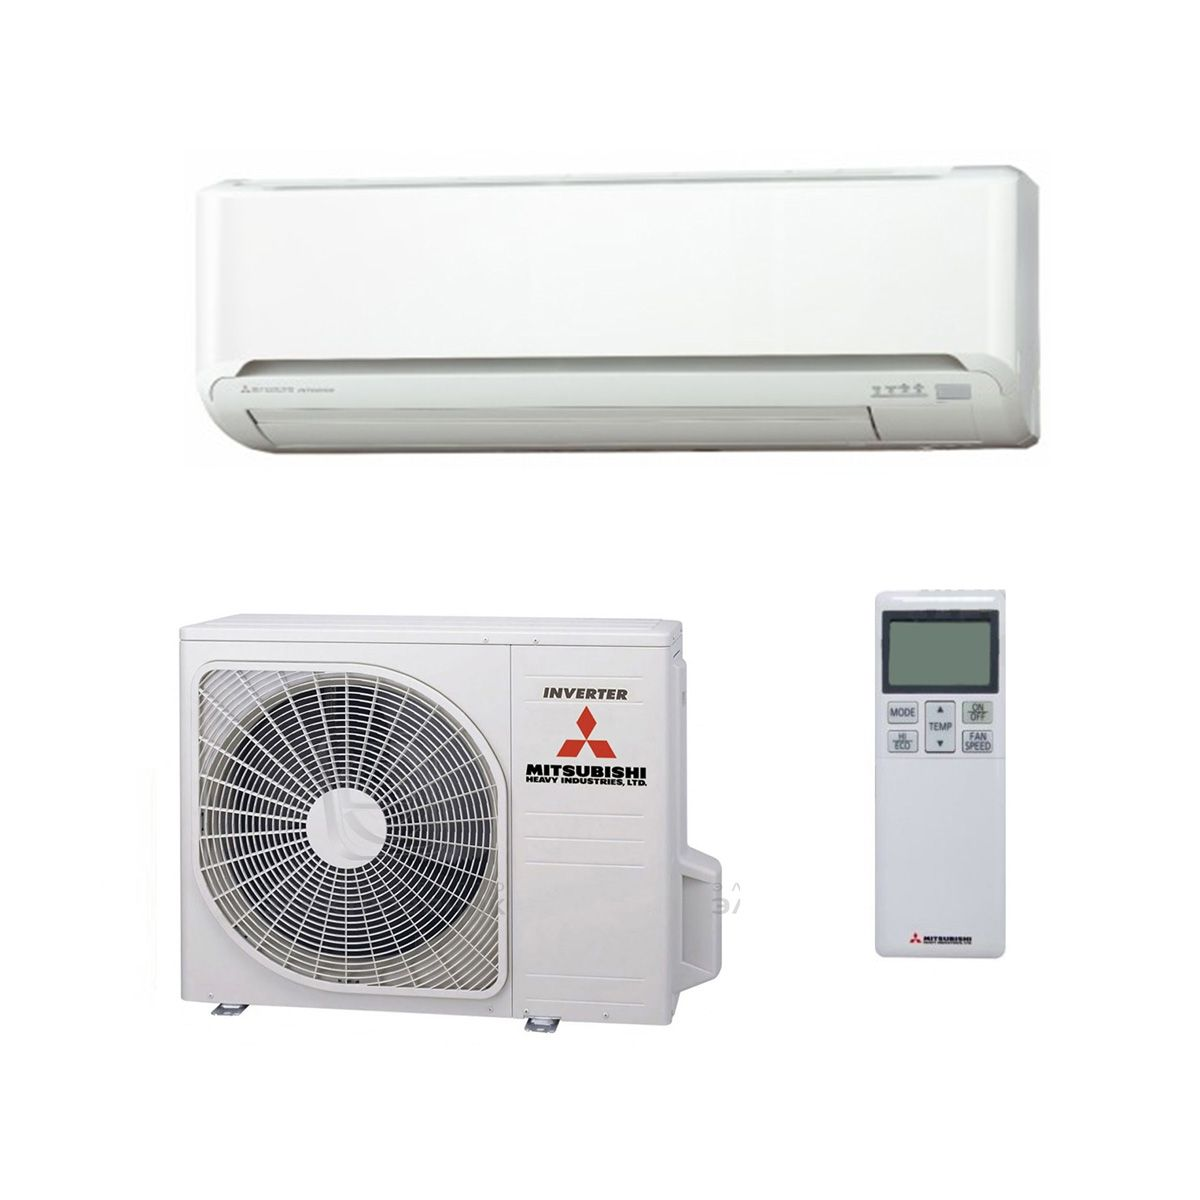 mitsubishi heavy industries air conditioning srk35zm-s wall mounted